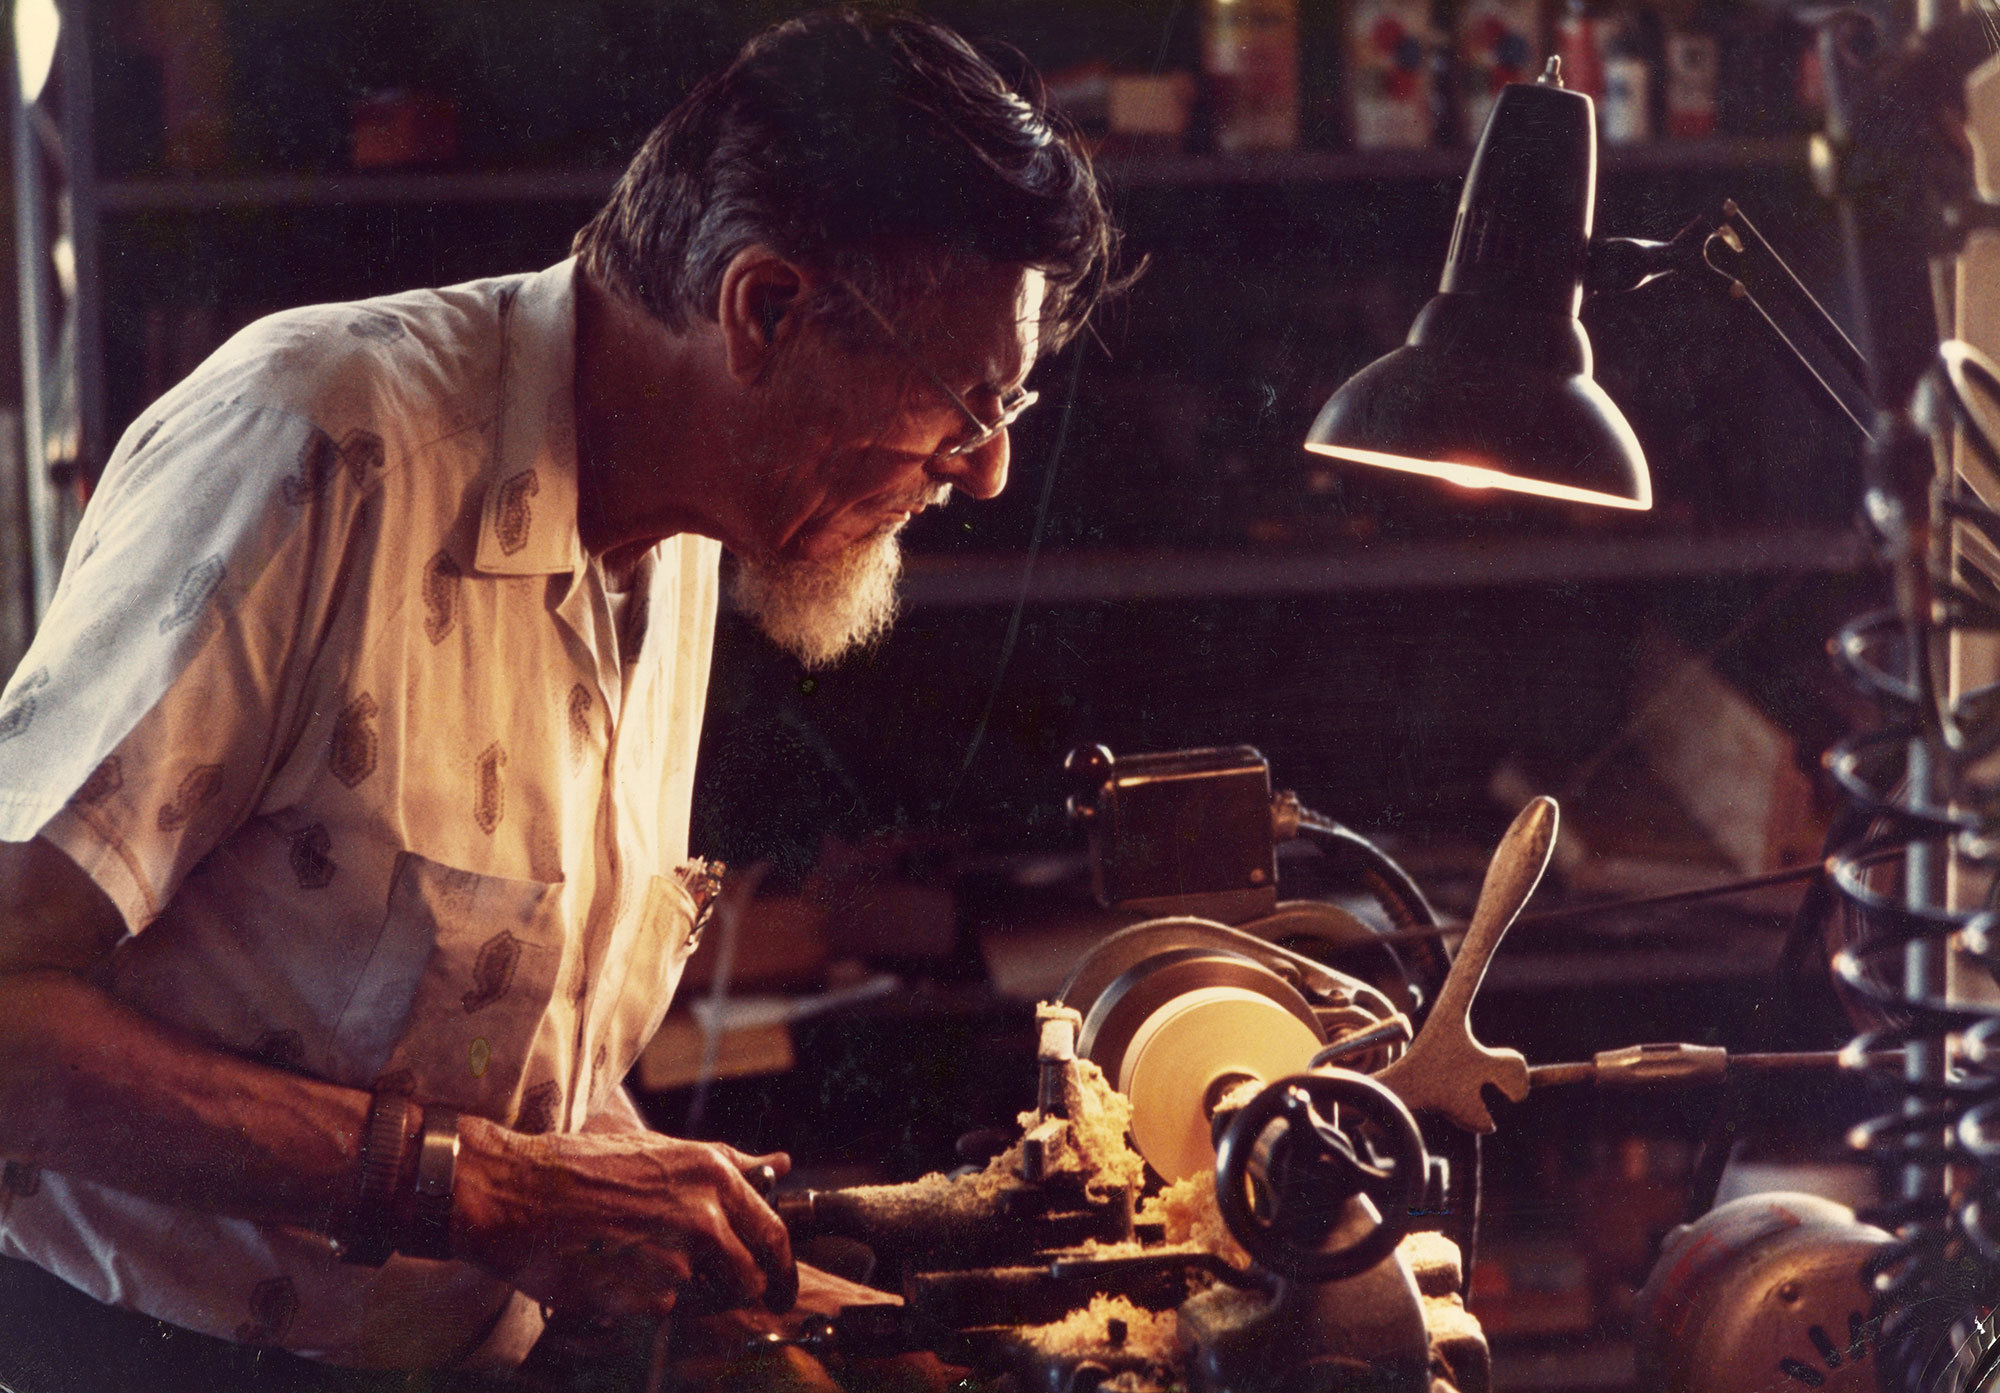 Man working in a workshop